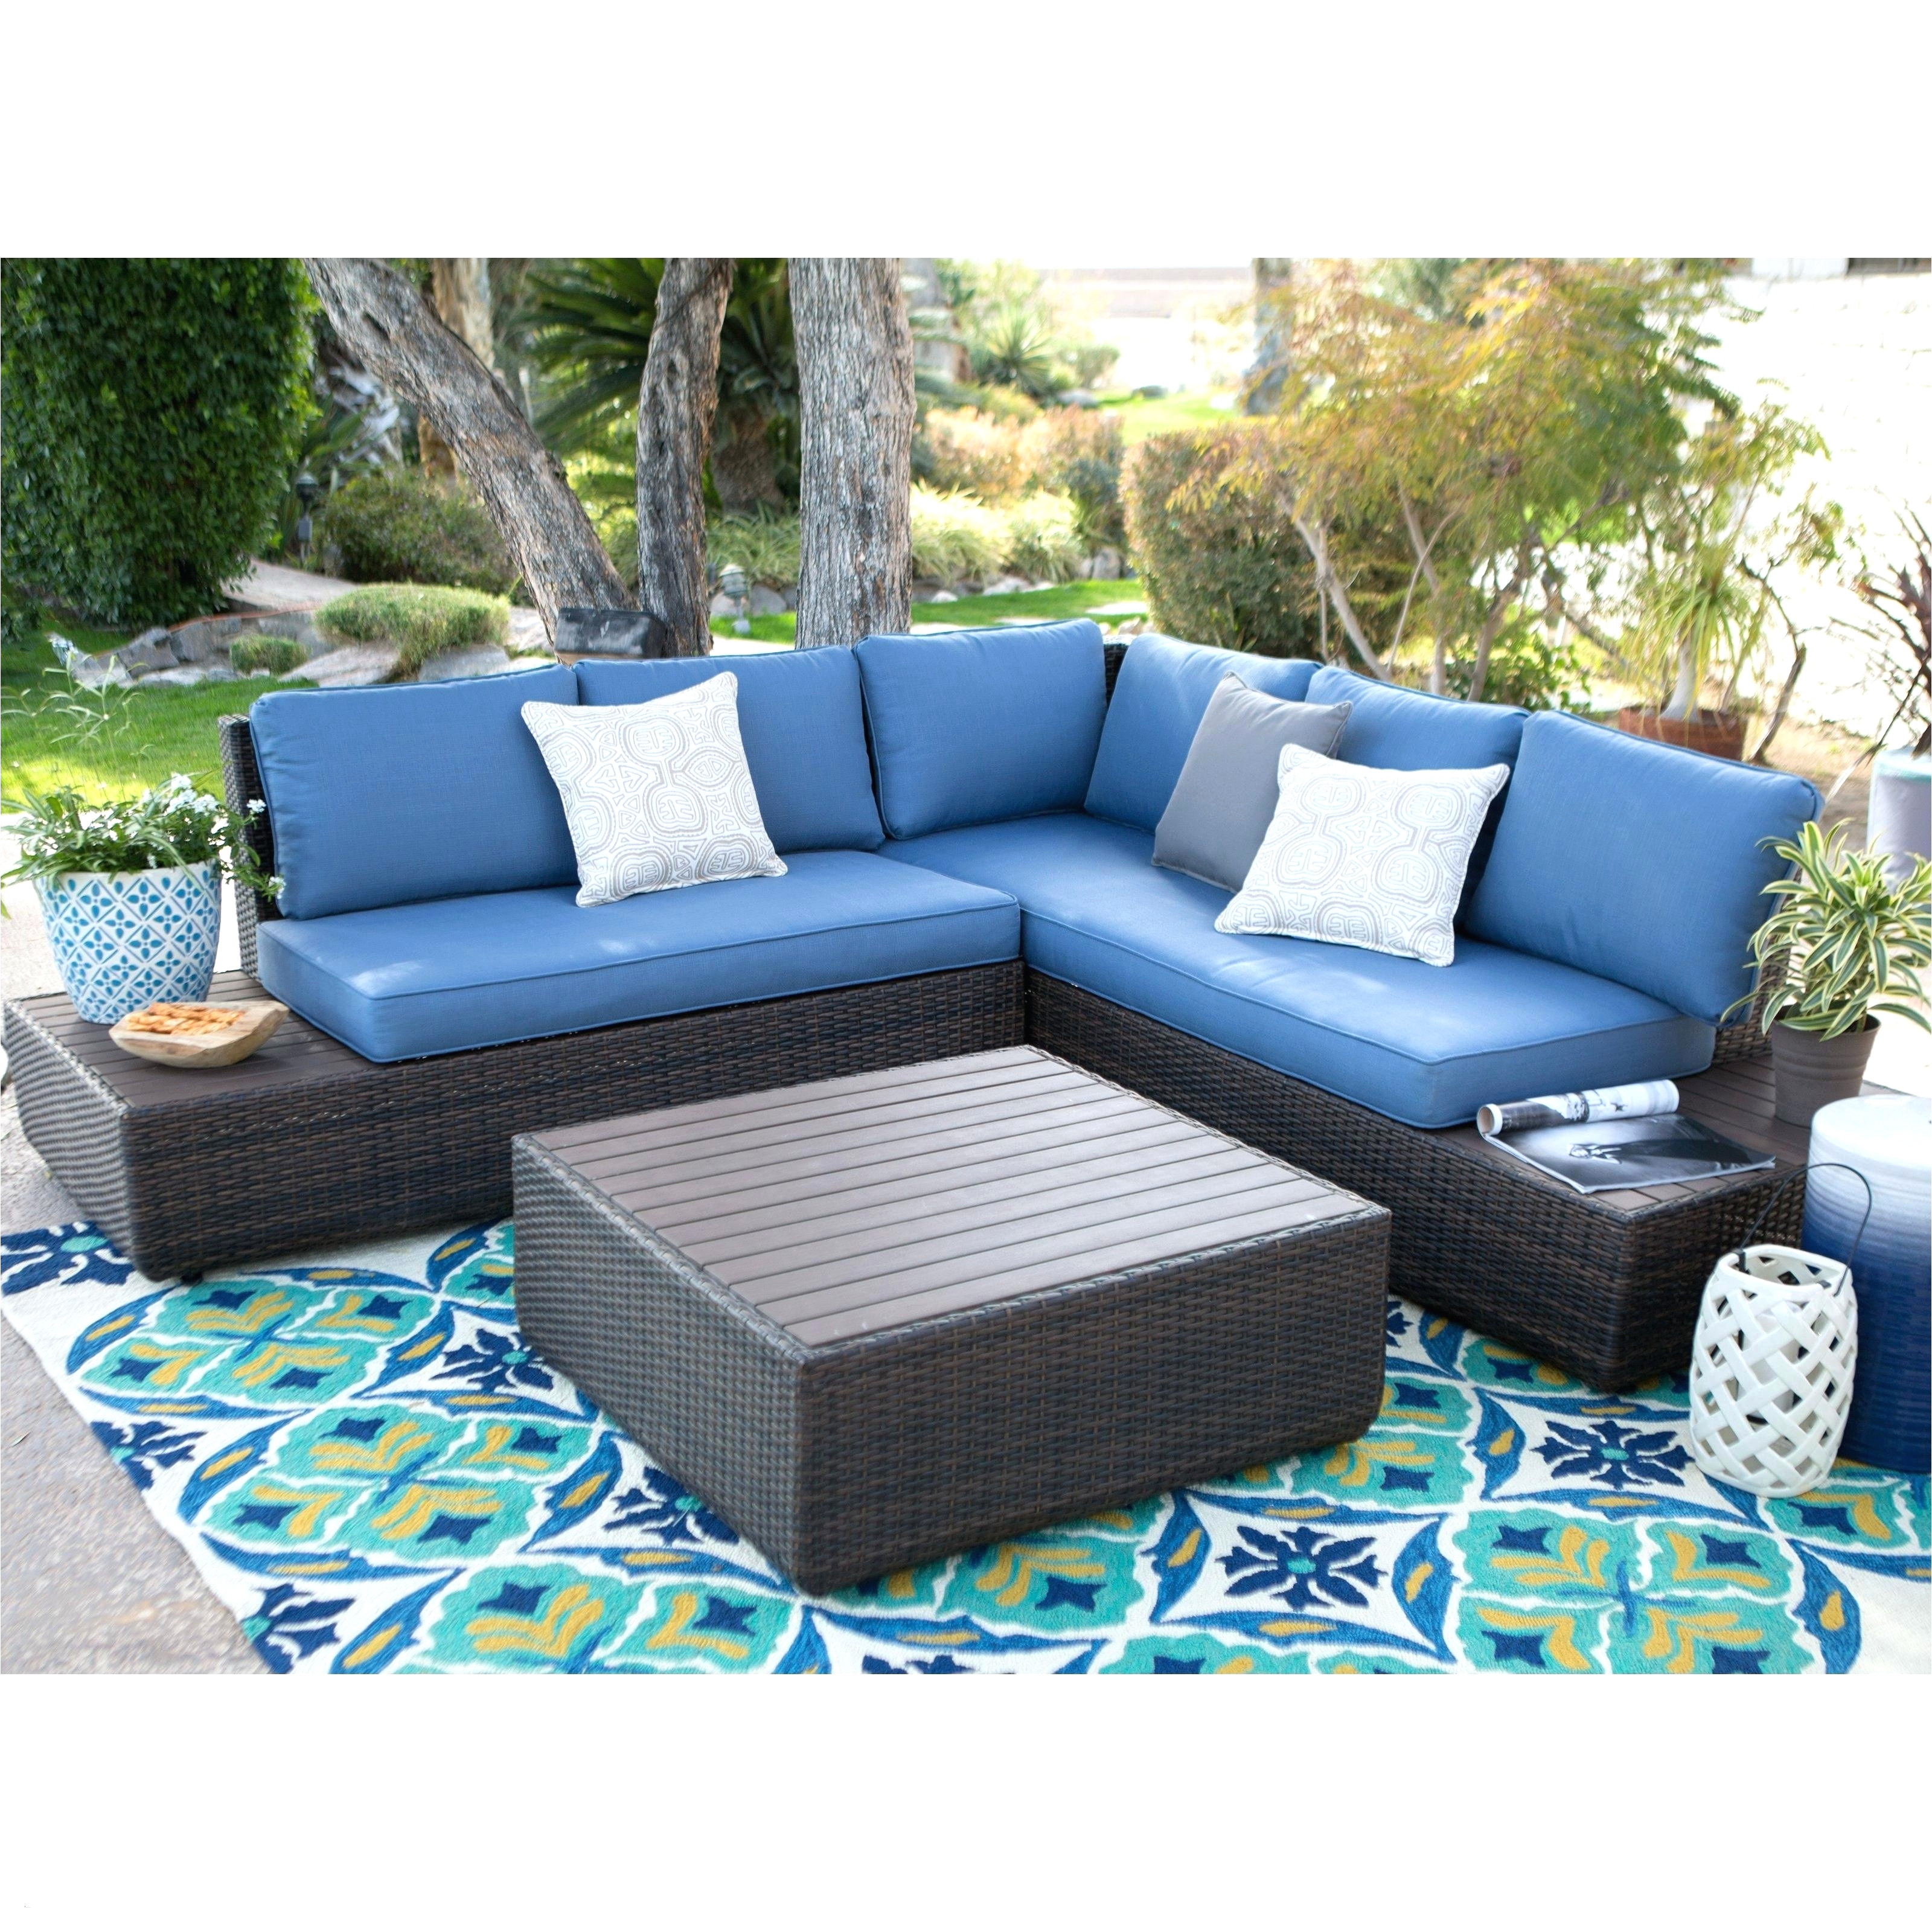 2a 4 patio furniture watsons outdoor furniture inspirational beautiful kmart outdoor